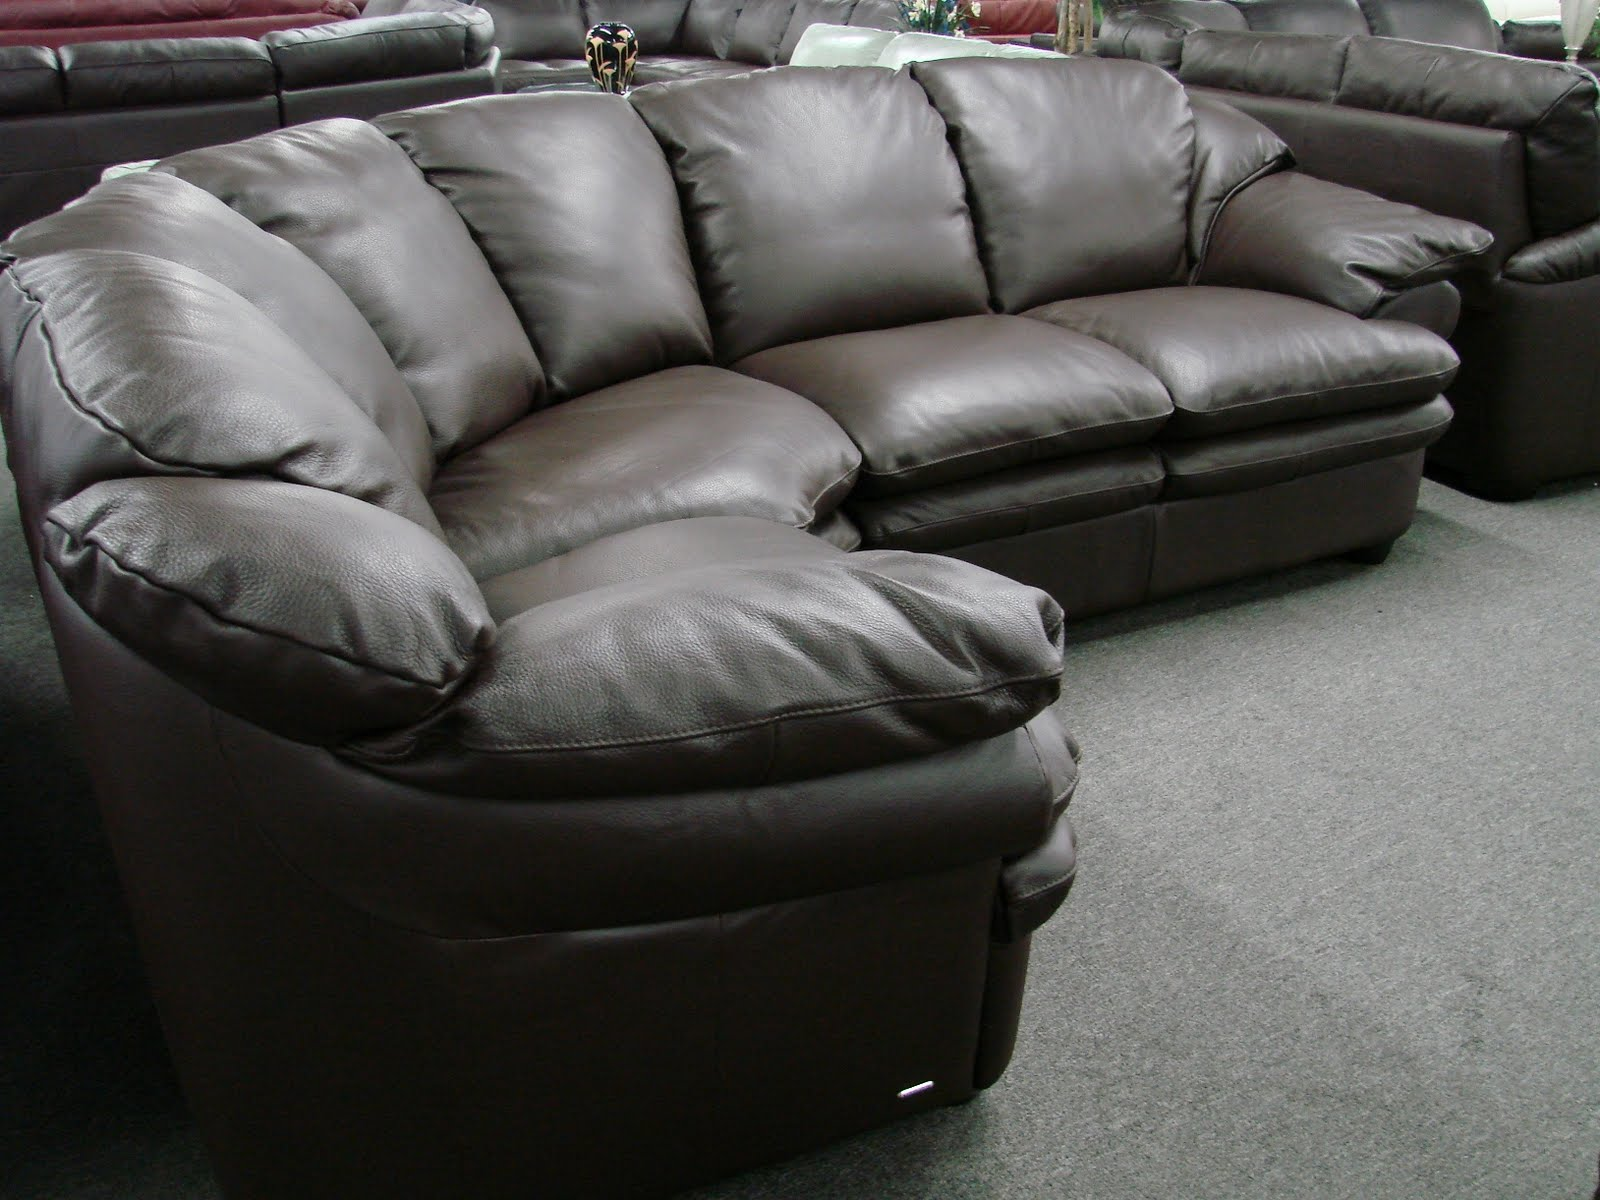 best sofa deals canada barker stonehouse beds natuzzi leather sofas and sectionals by interior concepts